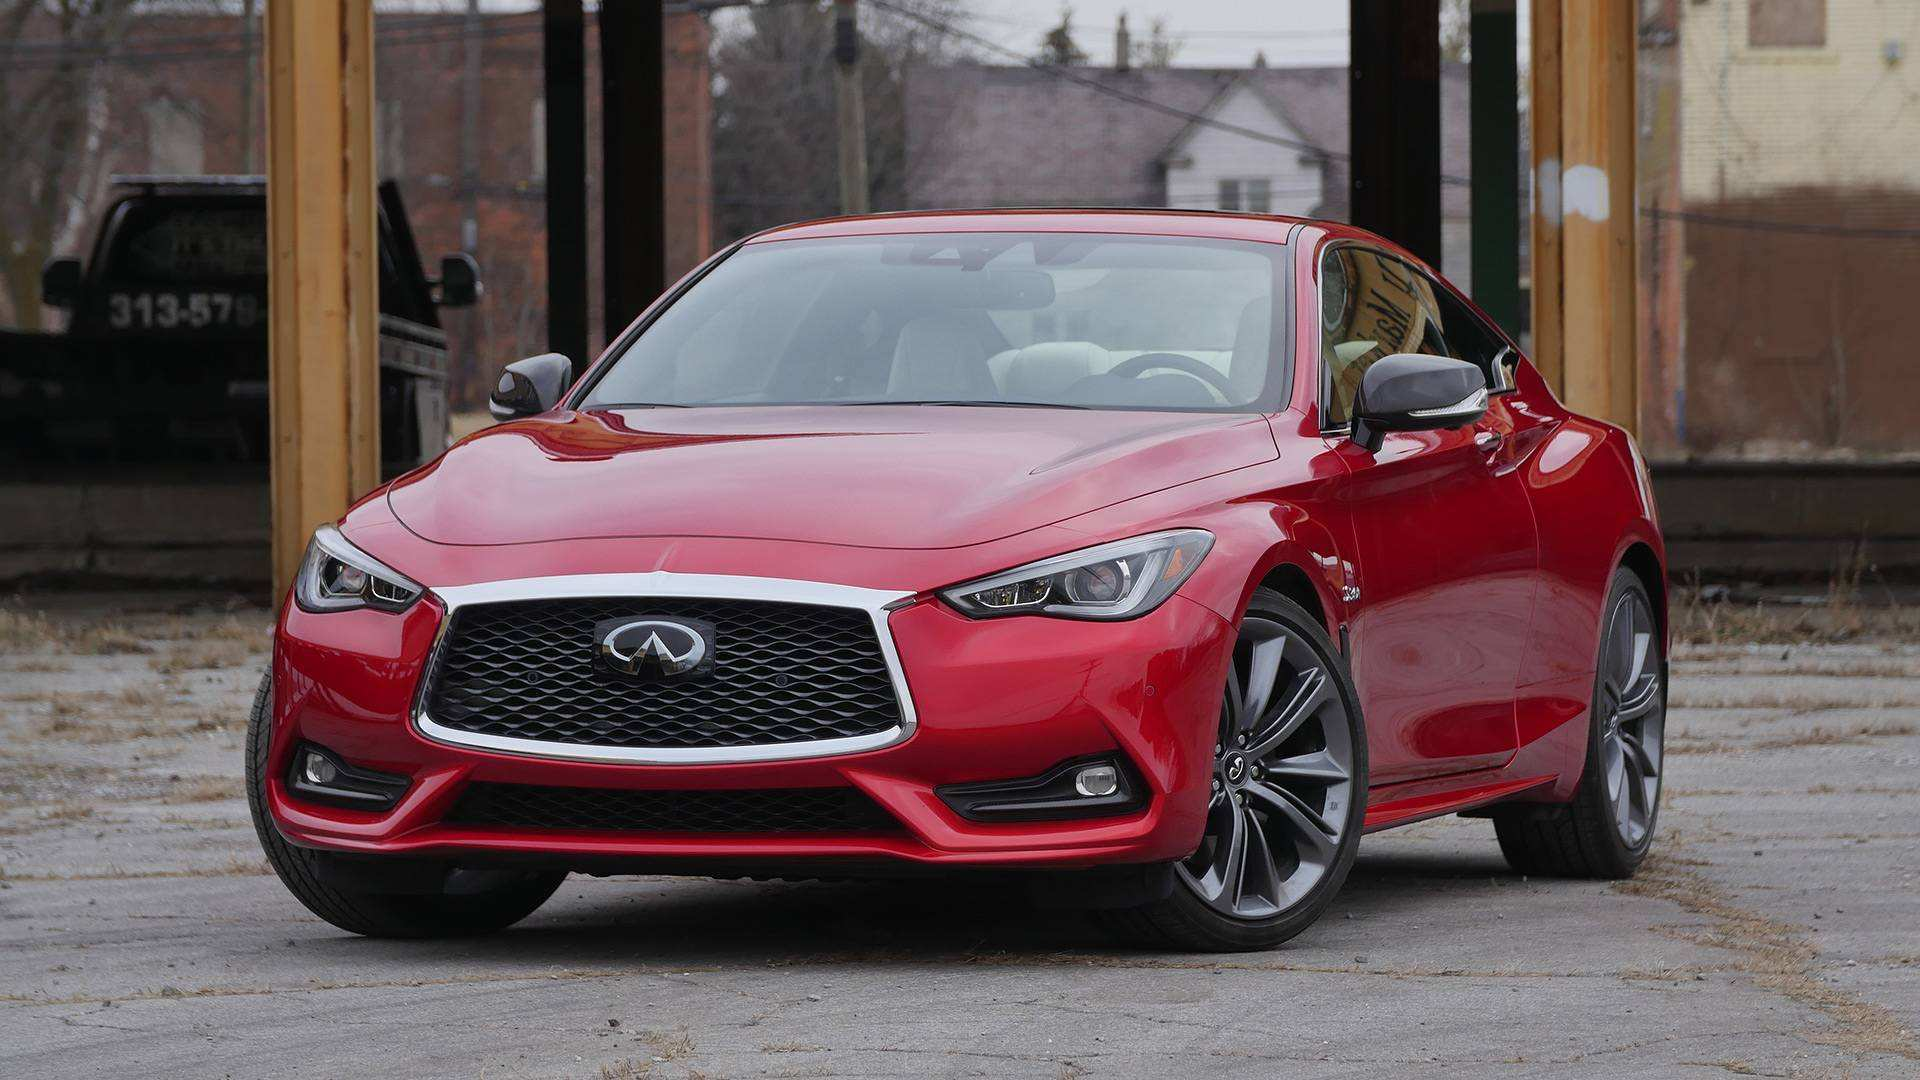 88 A Infiniti Q60 2020 Pictures